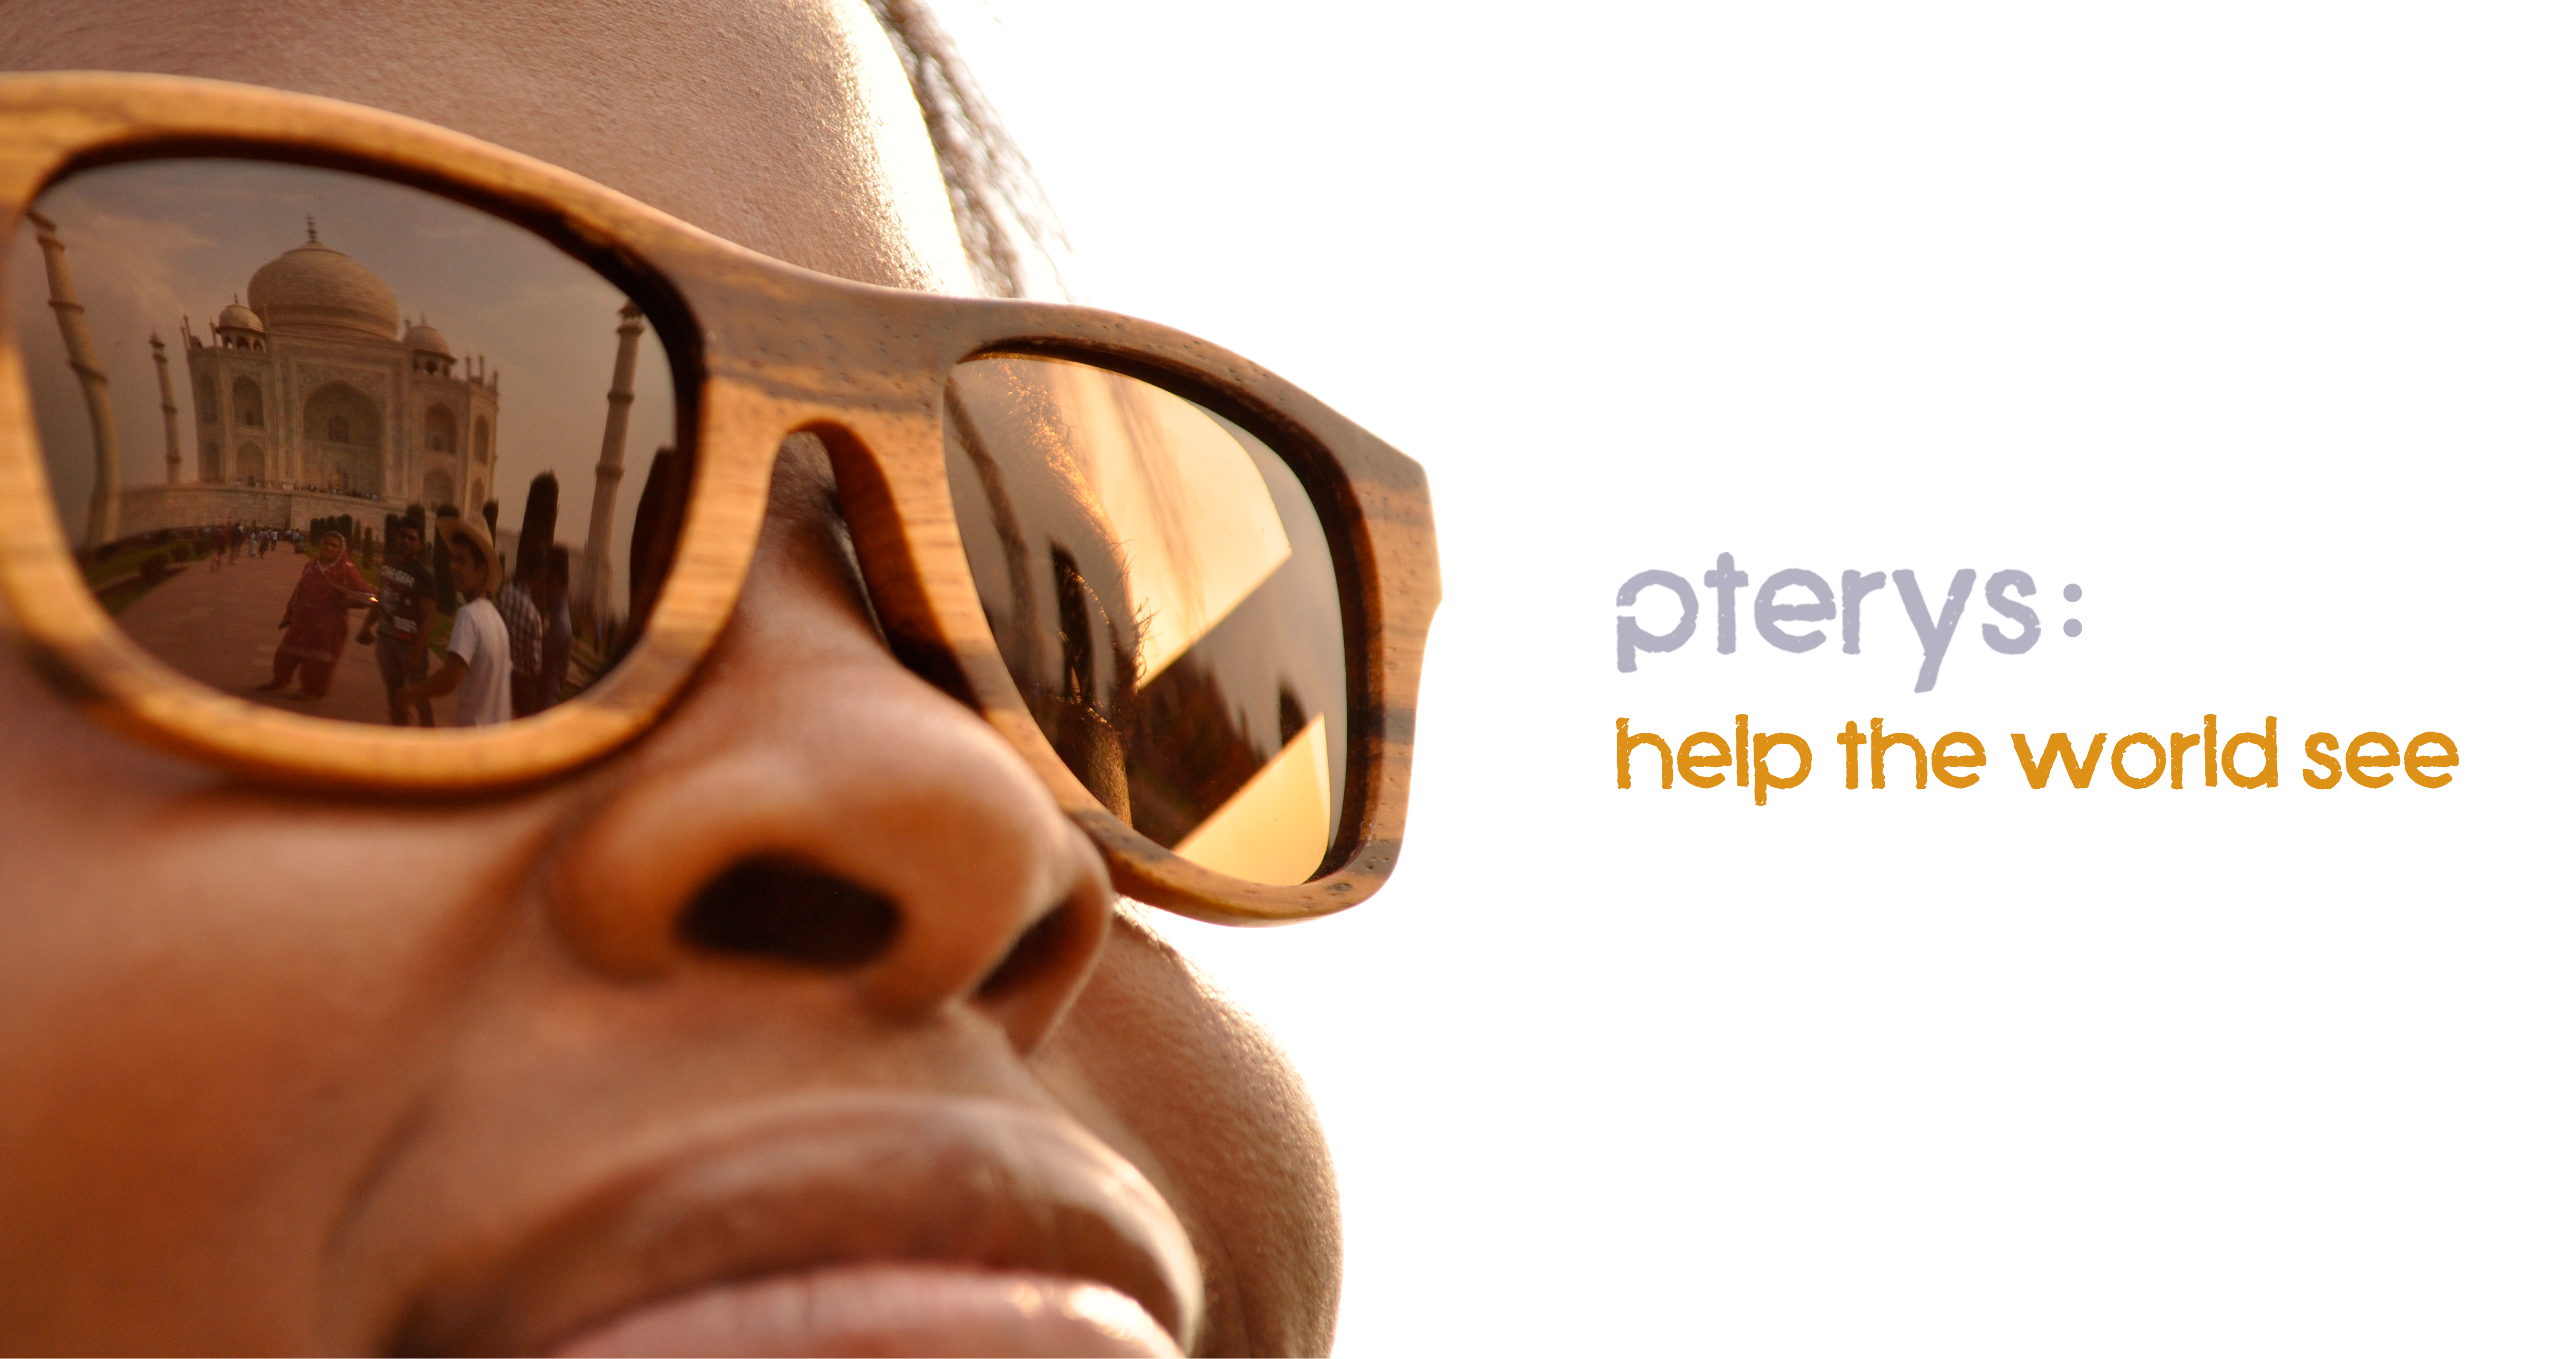 a875f3df8a5 Join the Pterys community by purchasing and rocking a pair of these trendy  and stylish sunglasses!